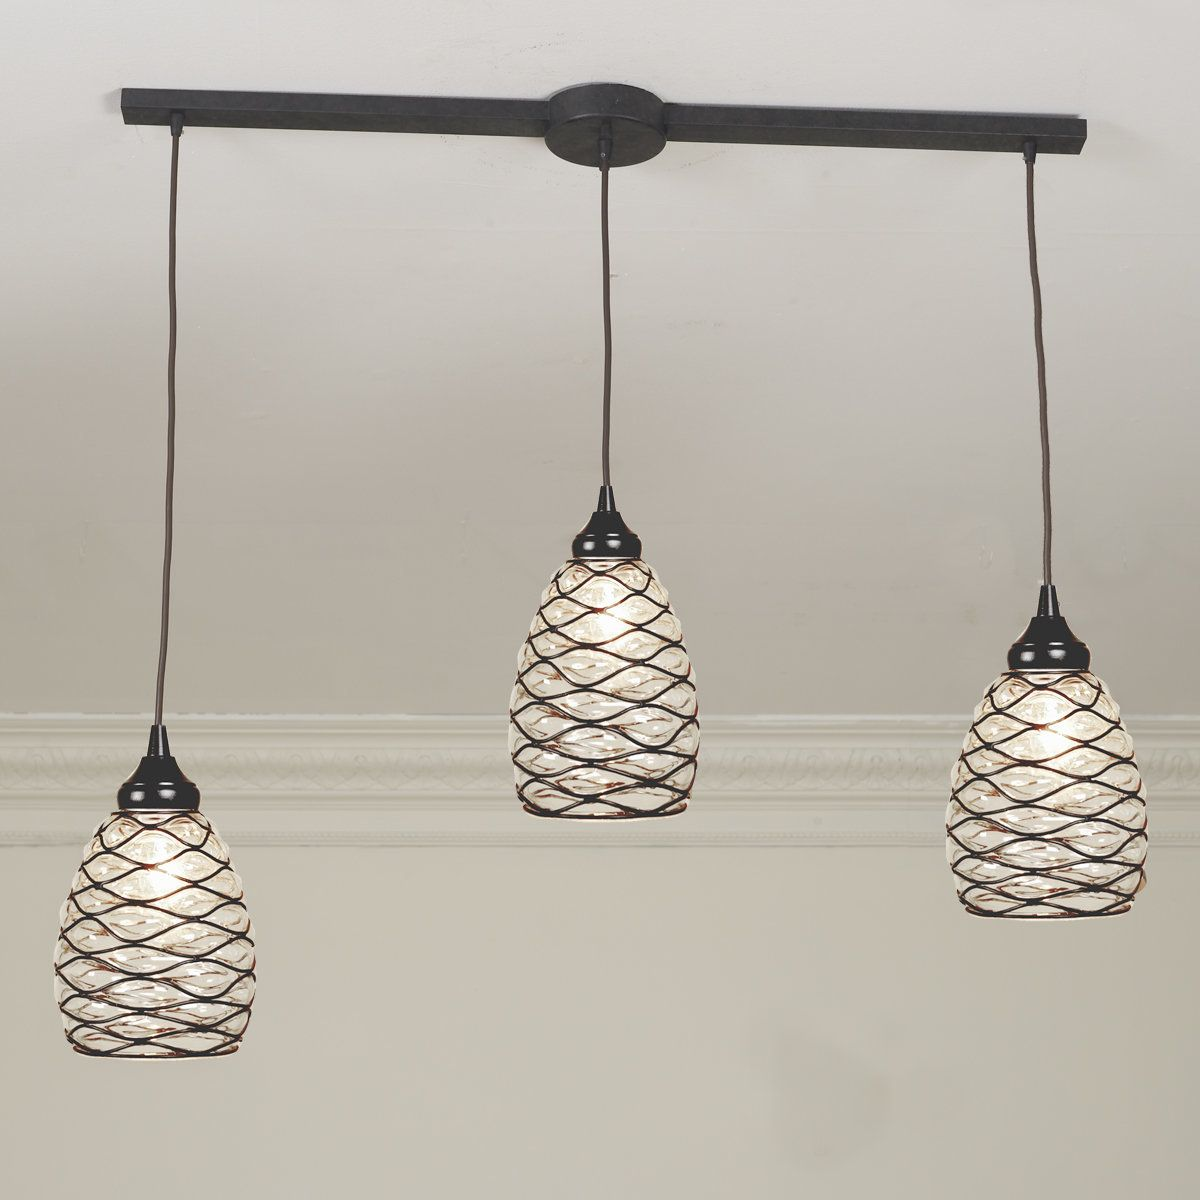 Cluster Pendant Adapters 3 Light Bar In 2021 Bar Lighting Glass Pendant Light Rustic Pendant Lighting